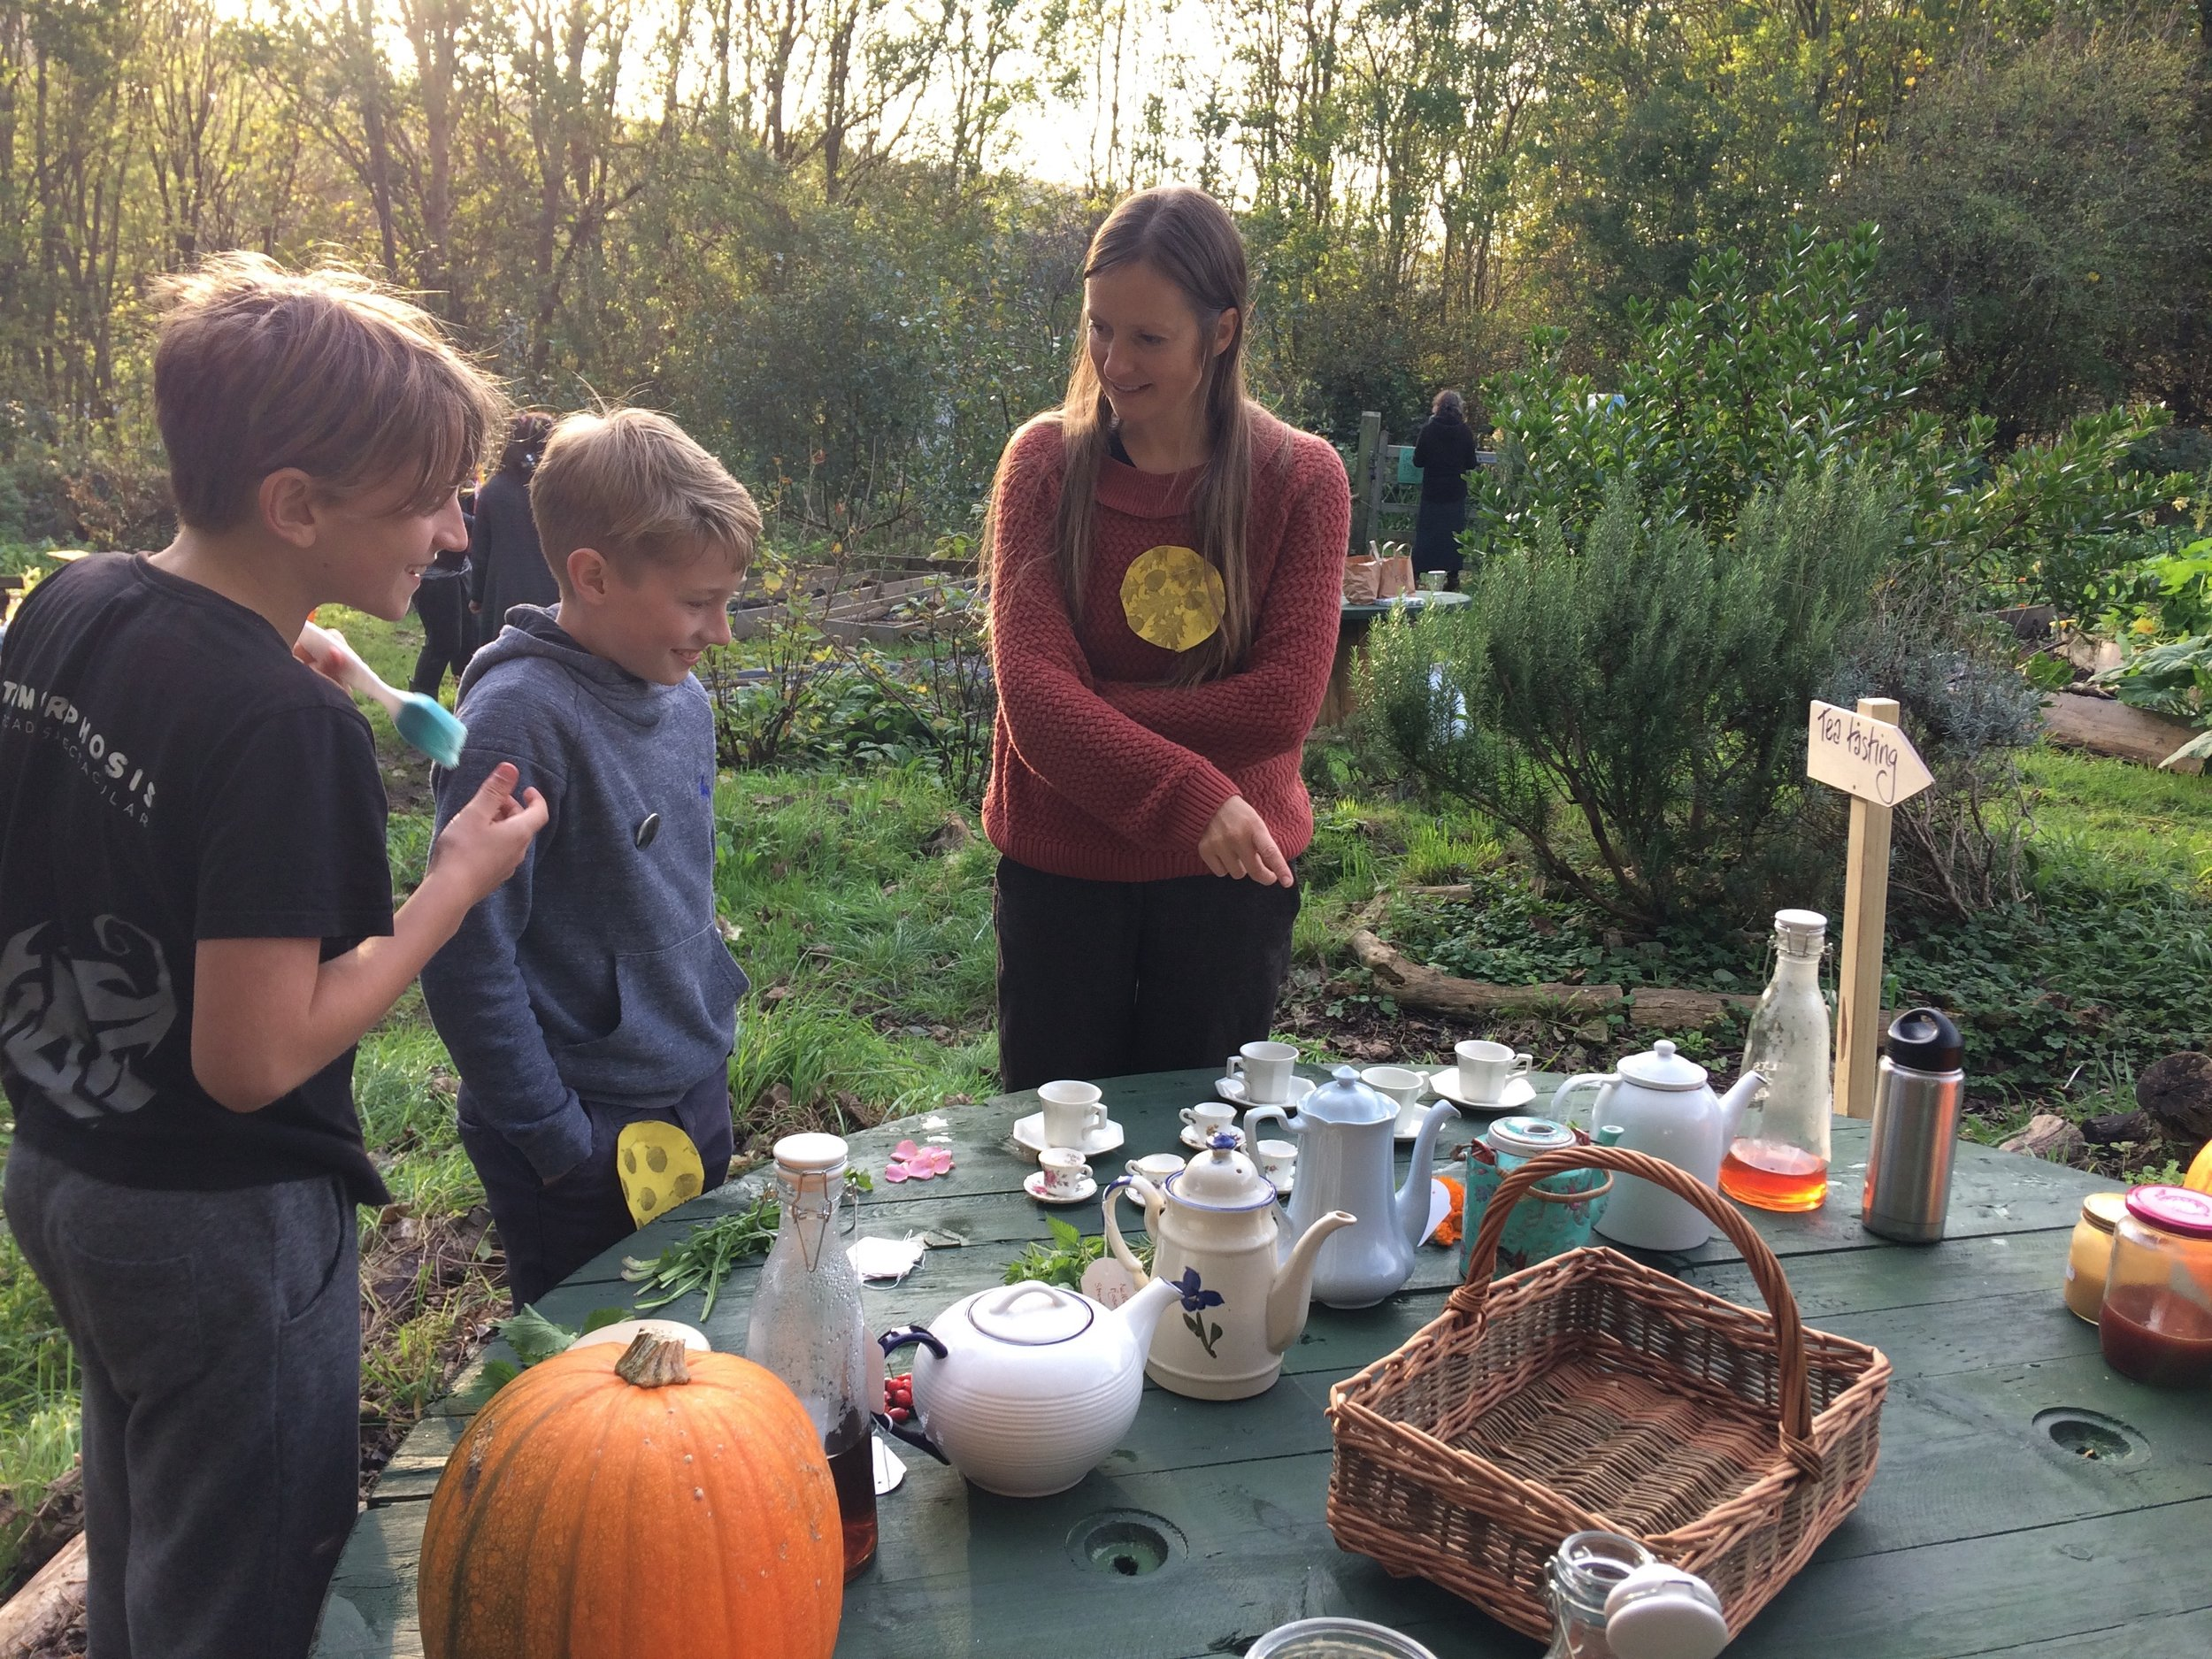 Hijack Halloween Fire & Feast - 28th October 2017A collaboration between Fernee Forest Club, Bevendean Community Garden and Hijack. We made wishes to the fairies, remembered lost loved ones, tasted tea, sang round the fire and feasted on delicious soul cakes and warm apple punch.